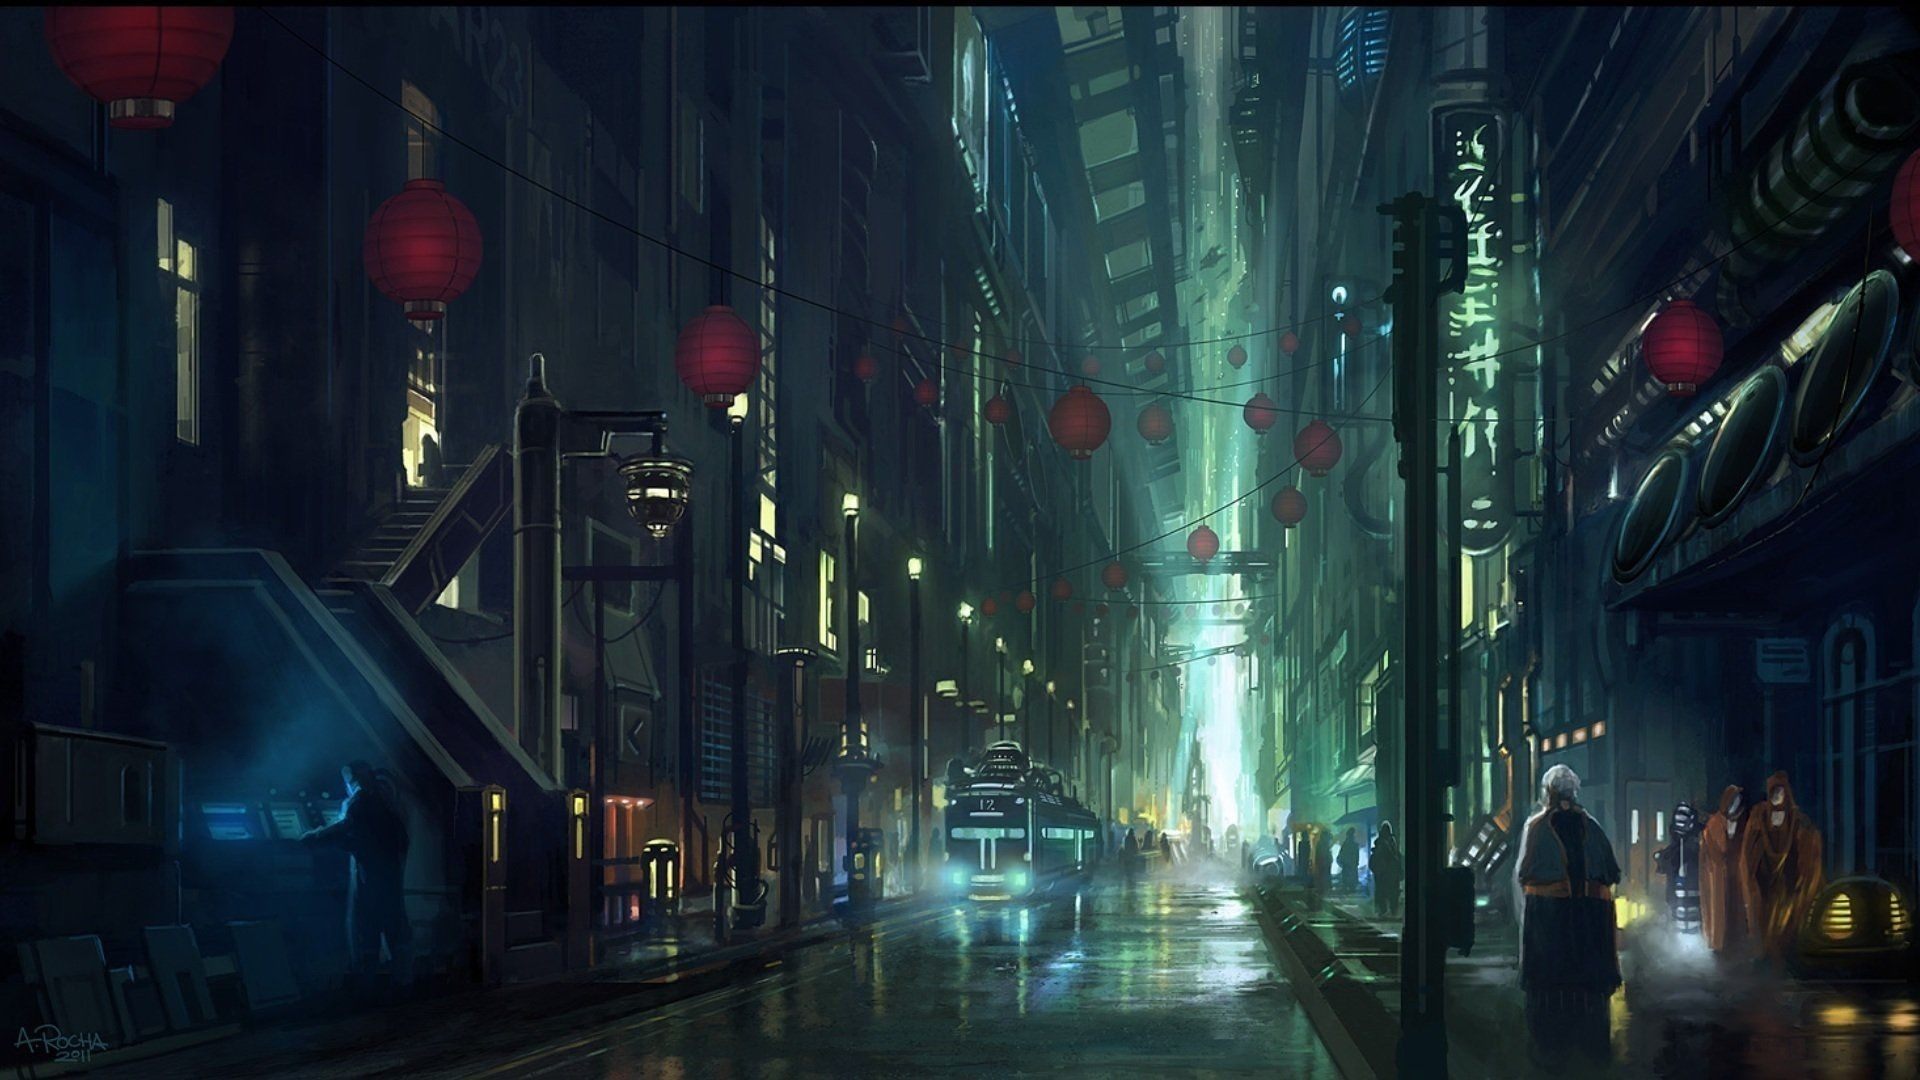 Res: 1920x1080, Blade Runner Wallpapers - Wallpaper Cave